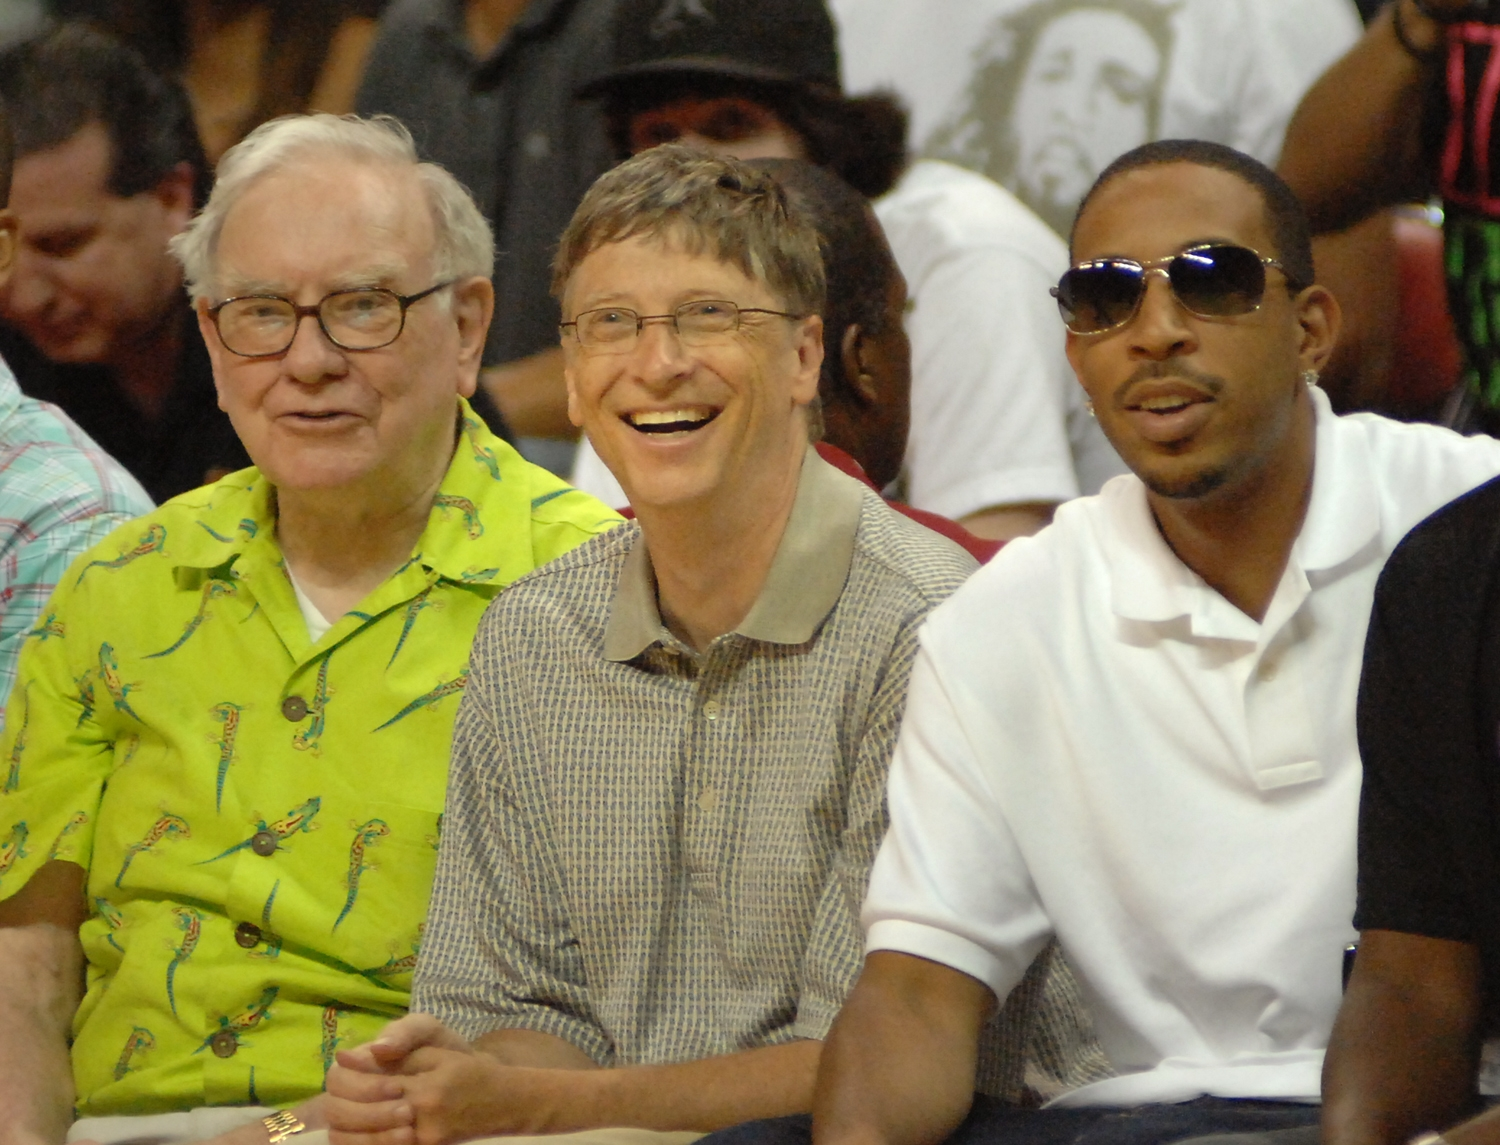 Warren Buffett, Bill Gates and, ... Ludacris?